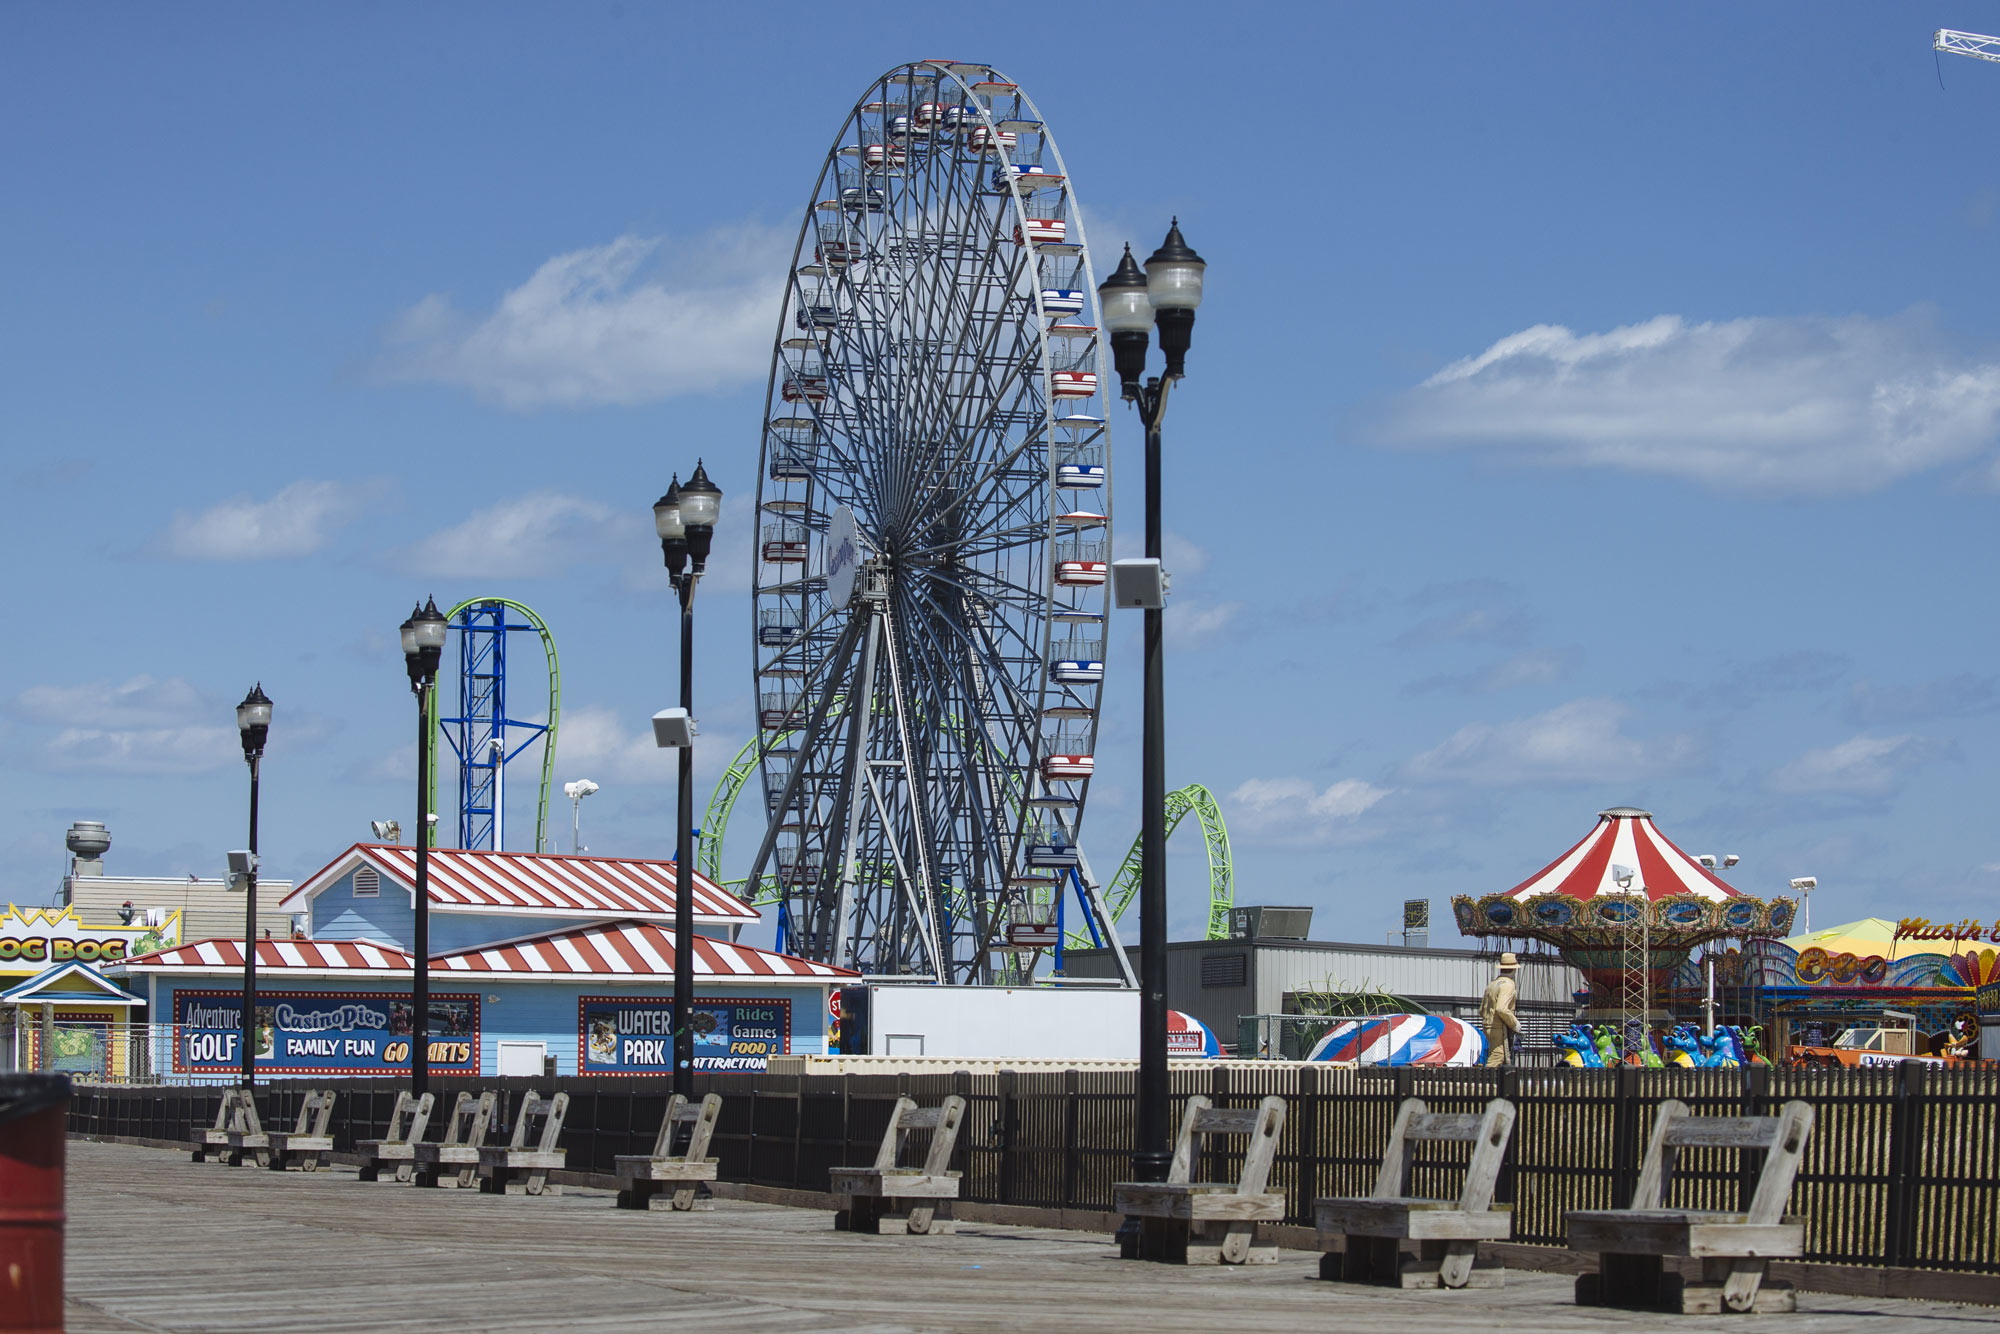 Rides sit idle at the Casino Pier amusement park in Seaside Heights, New Jersey, on April 22.